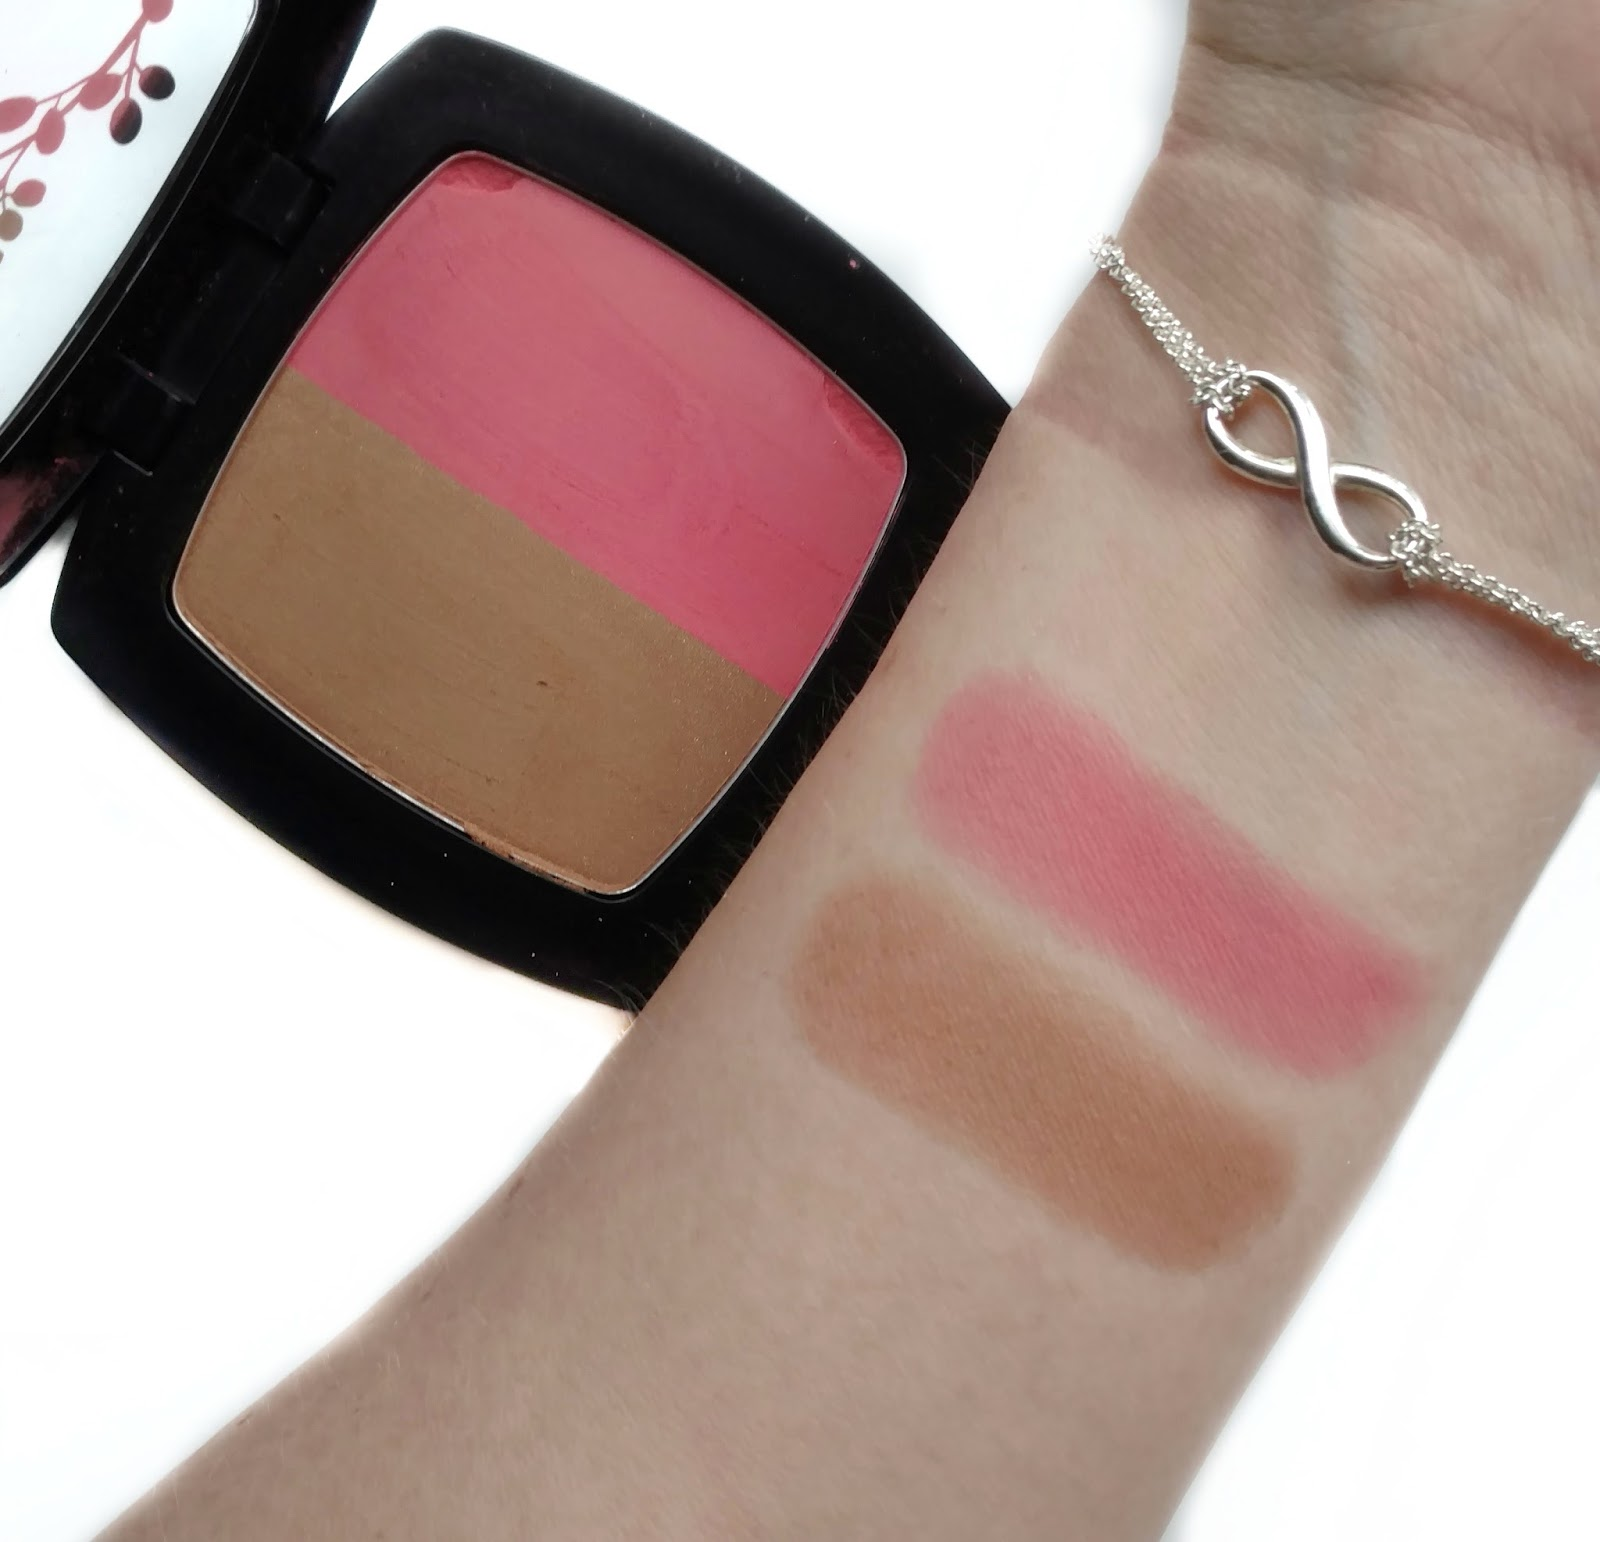 nuance salma hayek blush bronzer duo swatches